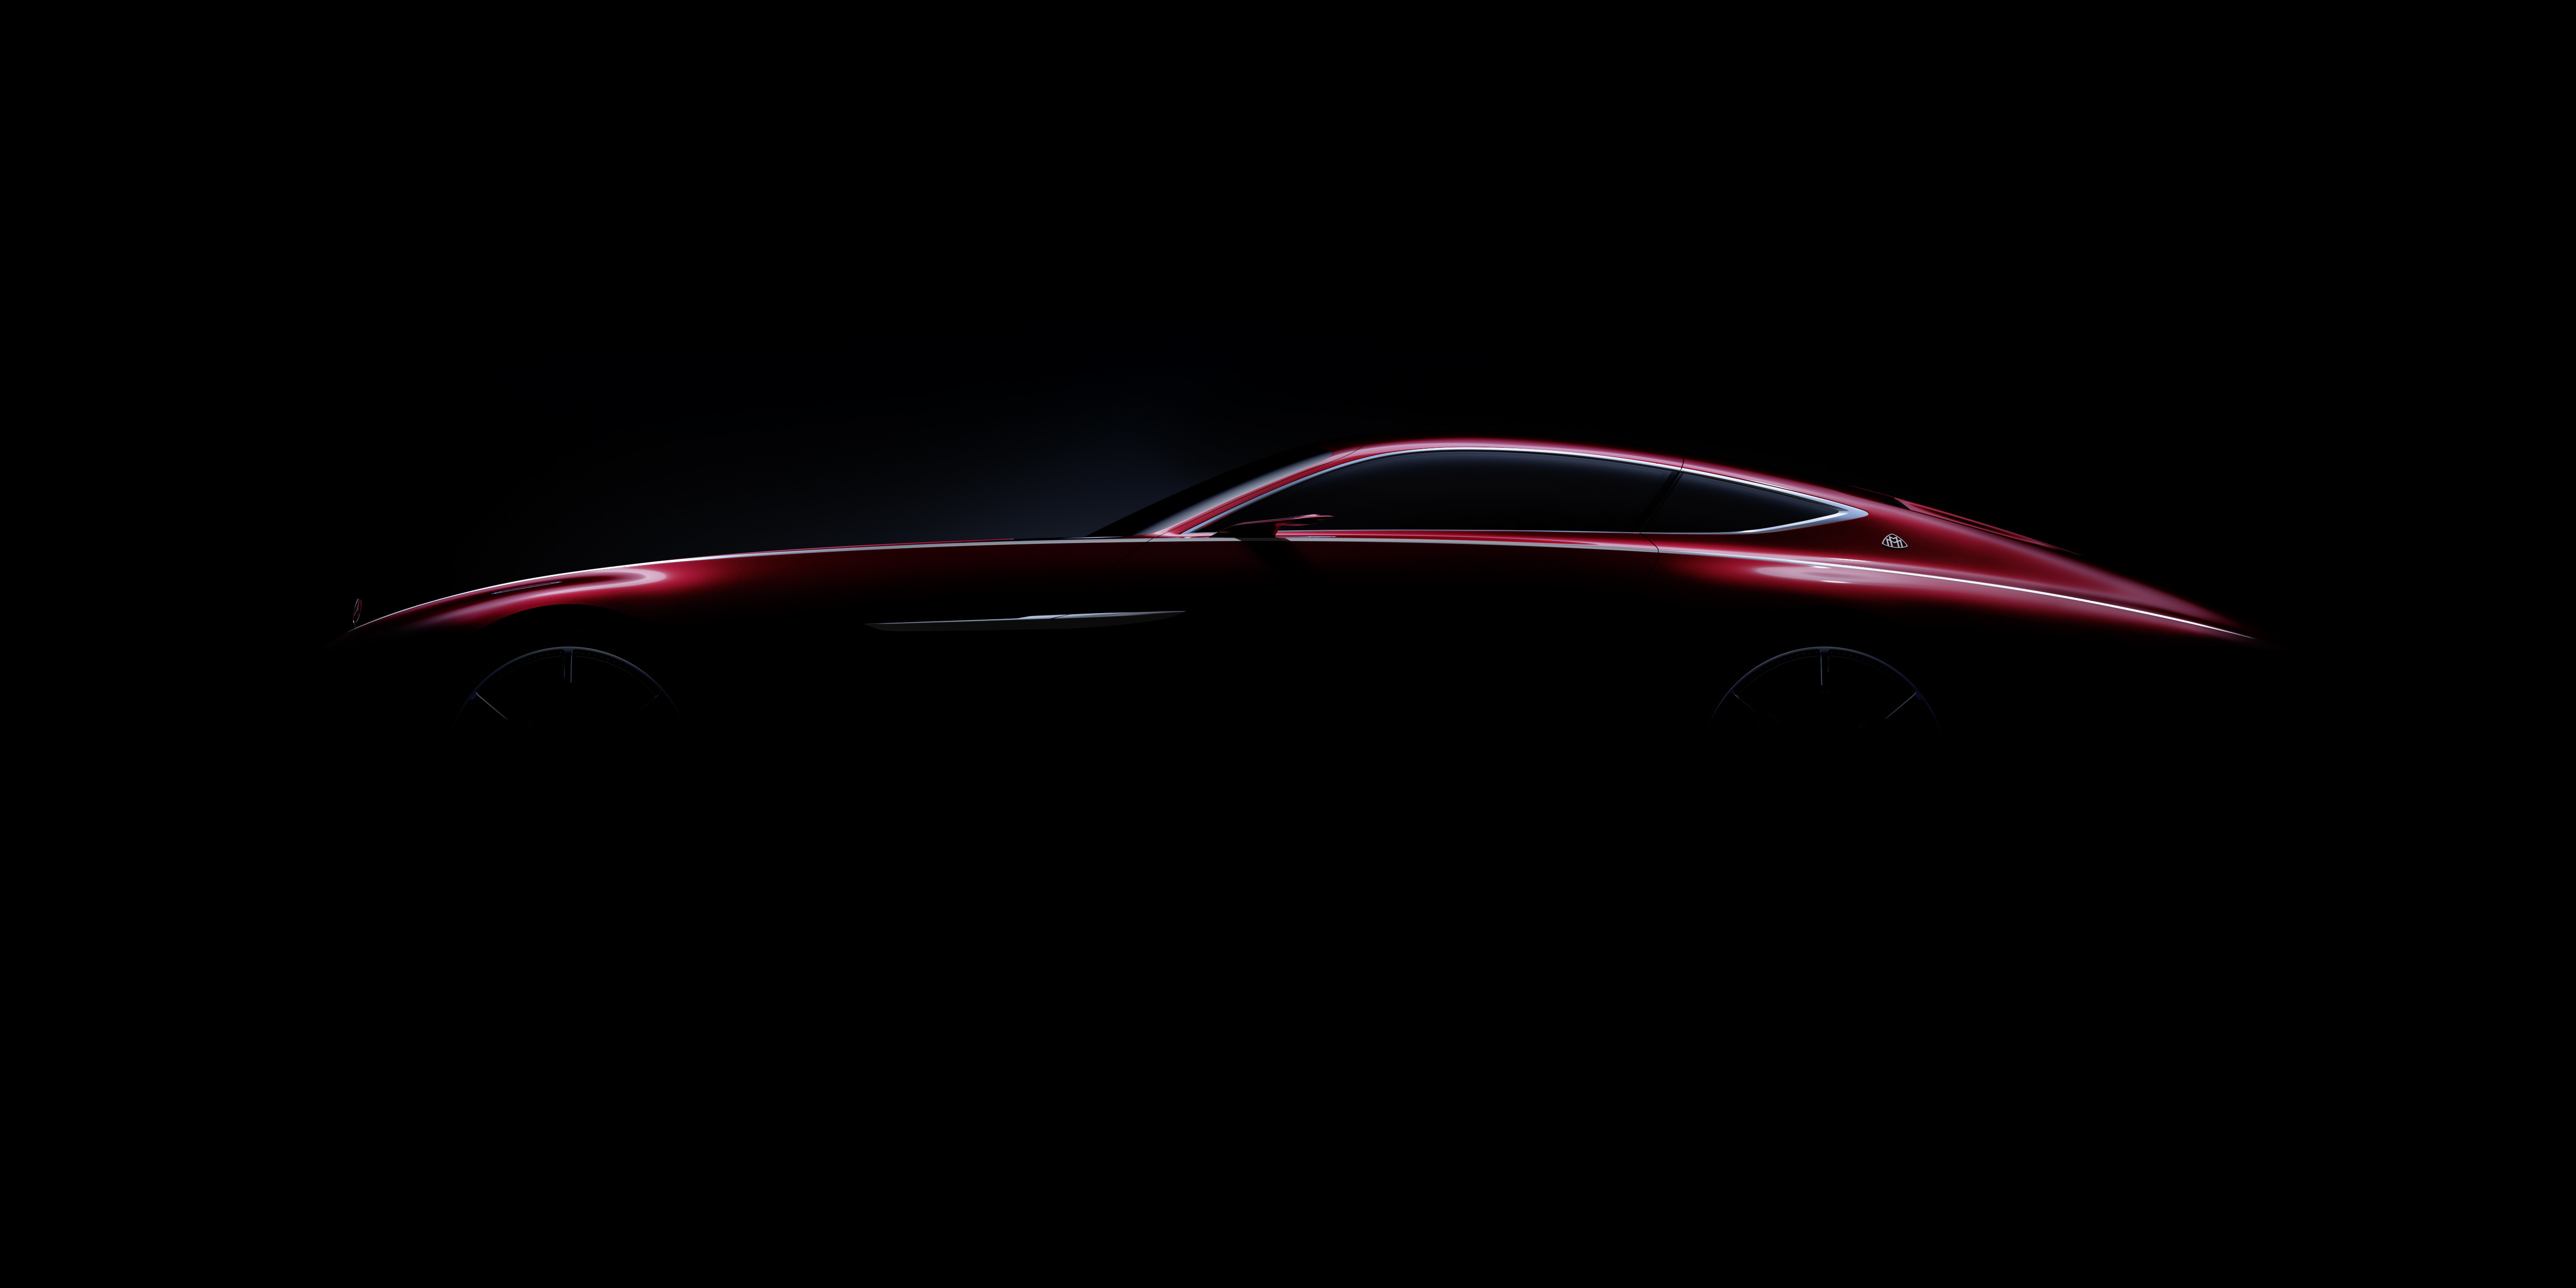 http://suv.reviewitonline.net/news/wp-content/uploads/2016/08/vision-mercedes-maybach-6-6.jpg